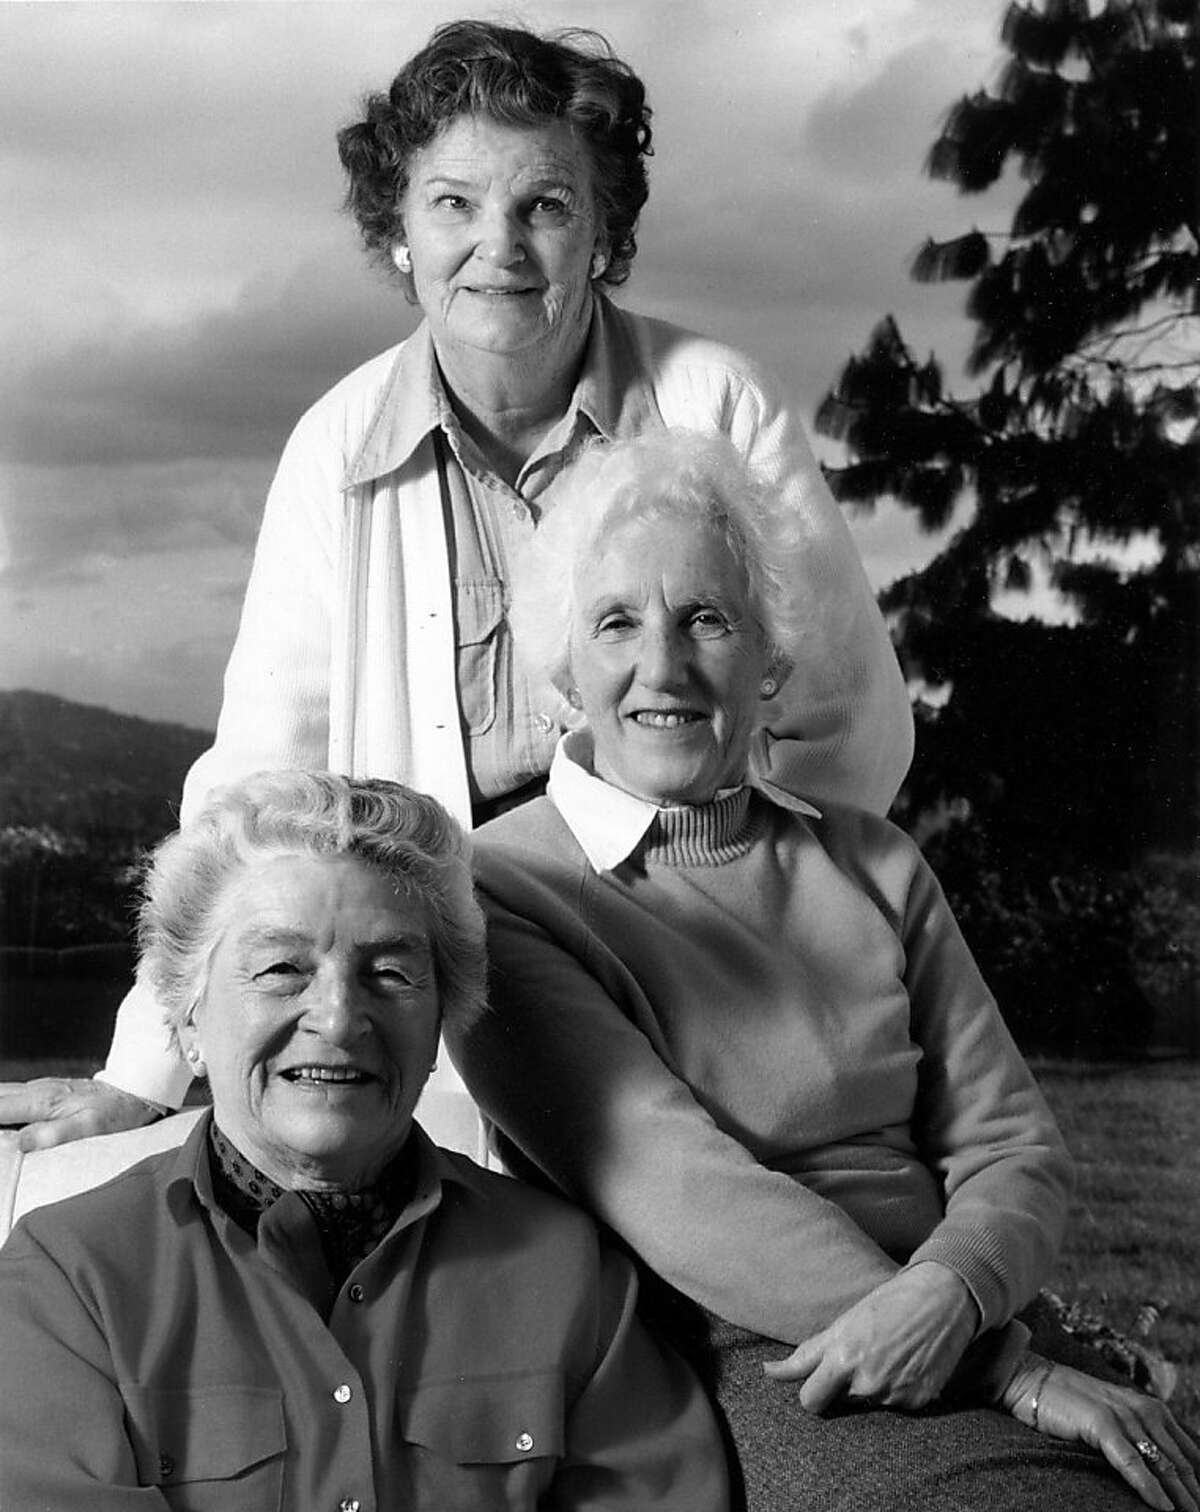 Save the Bay co-founder Catherine Kay Kerr, top, sits with friends Sylvia McLaughlin, left and Esther Gulick. Kerr, 99, died at her home in El Cerrito December 18, 2010. Ran on: 01-03-2011 Save the Bay co-founders Catherine Kay Kerr (top), Sylvia McLaughlin (left) and Esther Gulick. Mrs. Kerr died Dec. 18 at her home in El Cerrito. Ran on: 01-03-2011 Save the Bay co-founders Catherine Kay Kerr (top), Sylvia McLaughlin (left) and Esther Gulick. Mrs. Kerr died Dec. 18 at her home in El Cerrito.